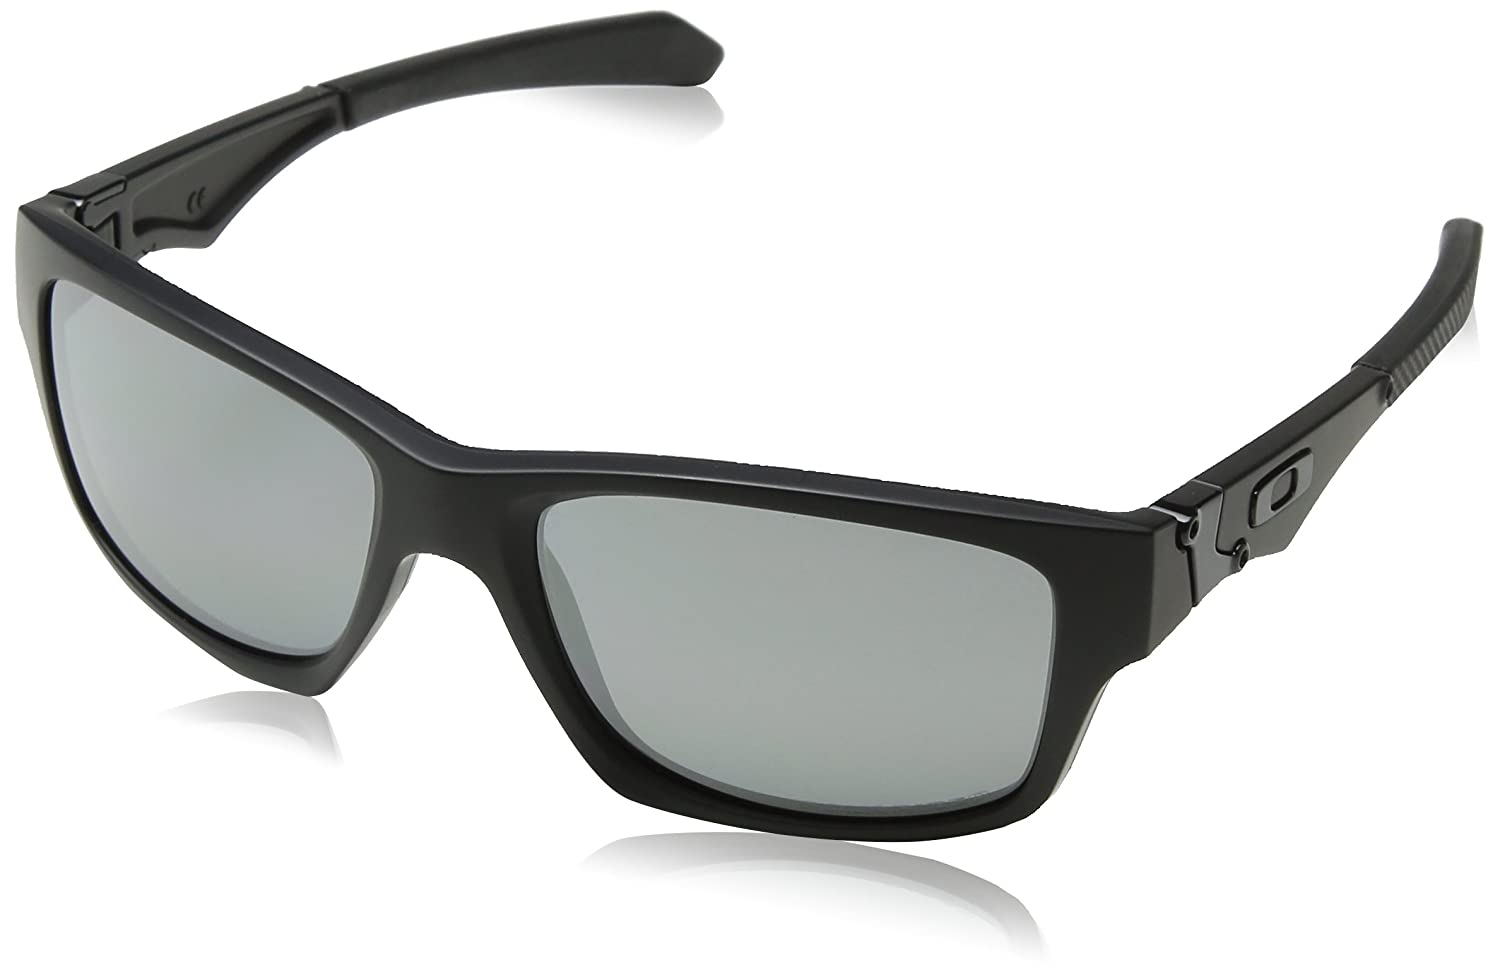 fb5a592bc9 Amazon.com  Oakley Jupiter Squared Men s Polarized Lifestyle Sports  Sunglasses Eyewear - Matte Black Black Iridium One Size Fits All  Oakley   Clothing